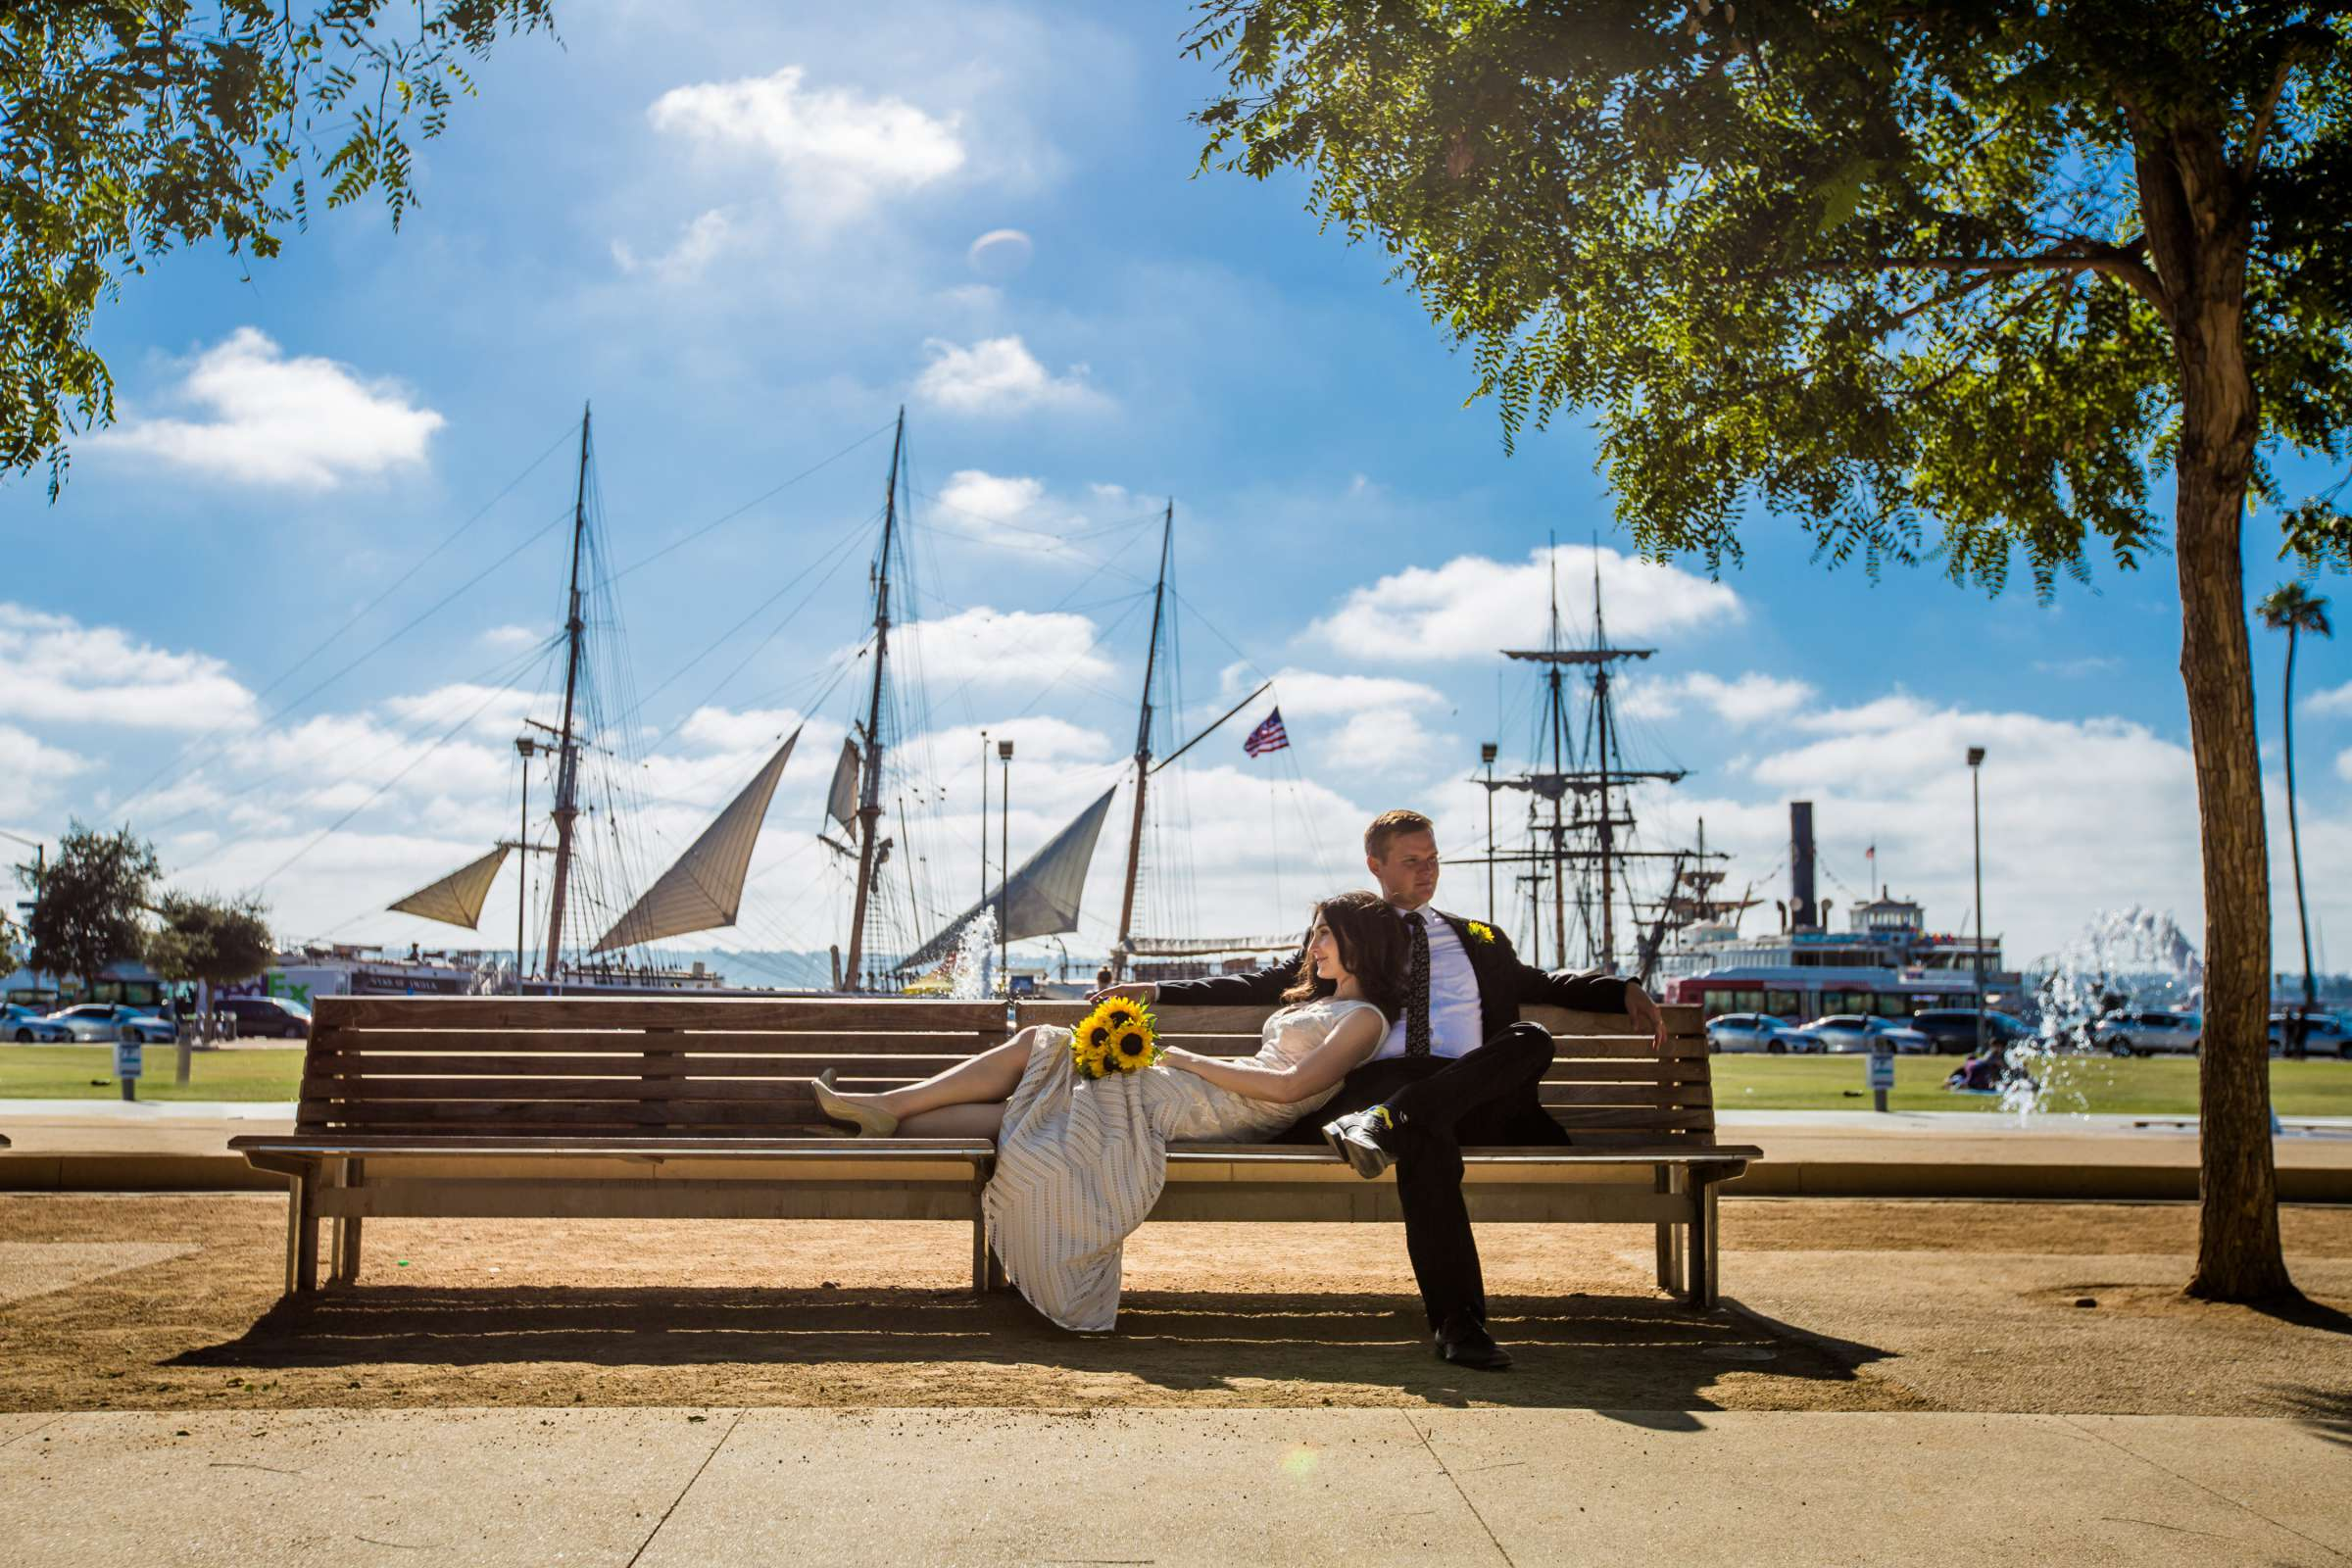 San Diego Courthouse Wedding, Erin and Douglas Wedding Photo #404325 by True Photography